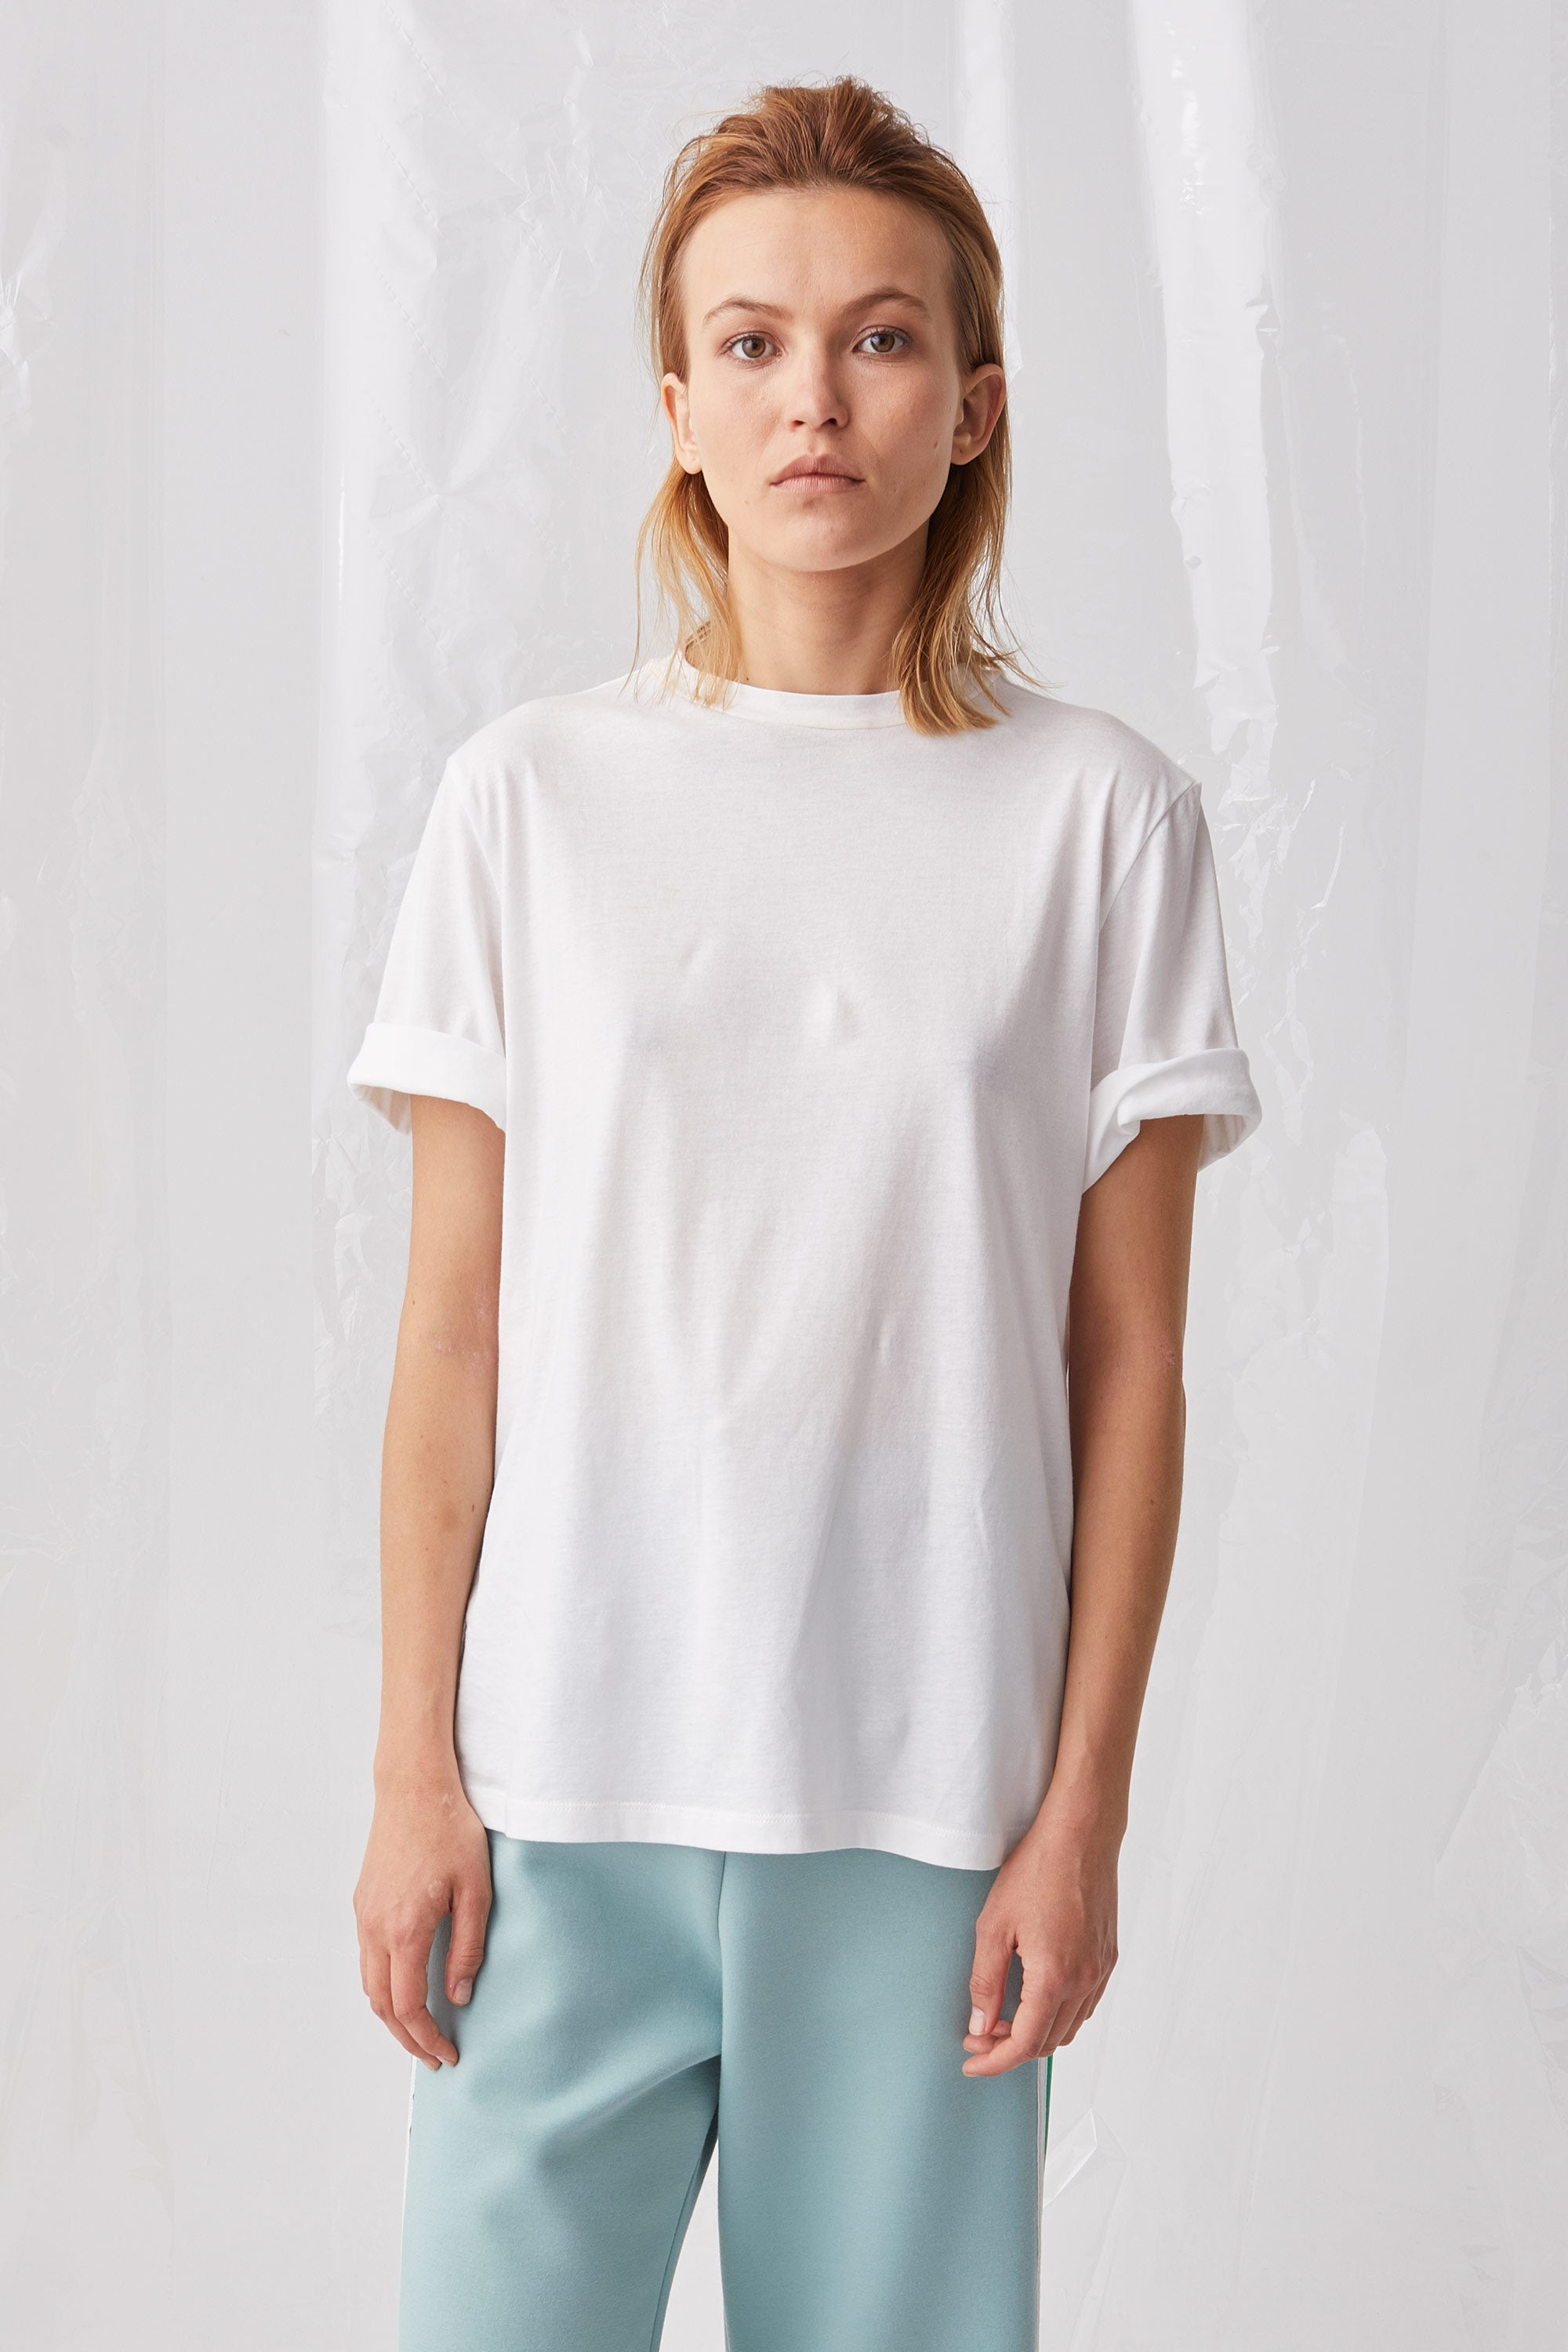 Ricochet NZ Fashion Designer Clothing Boutique SS18 Airi Tee Shirt White Cotton Made in NZ